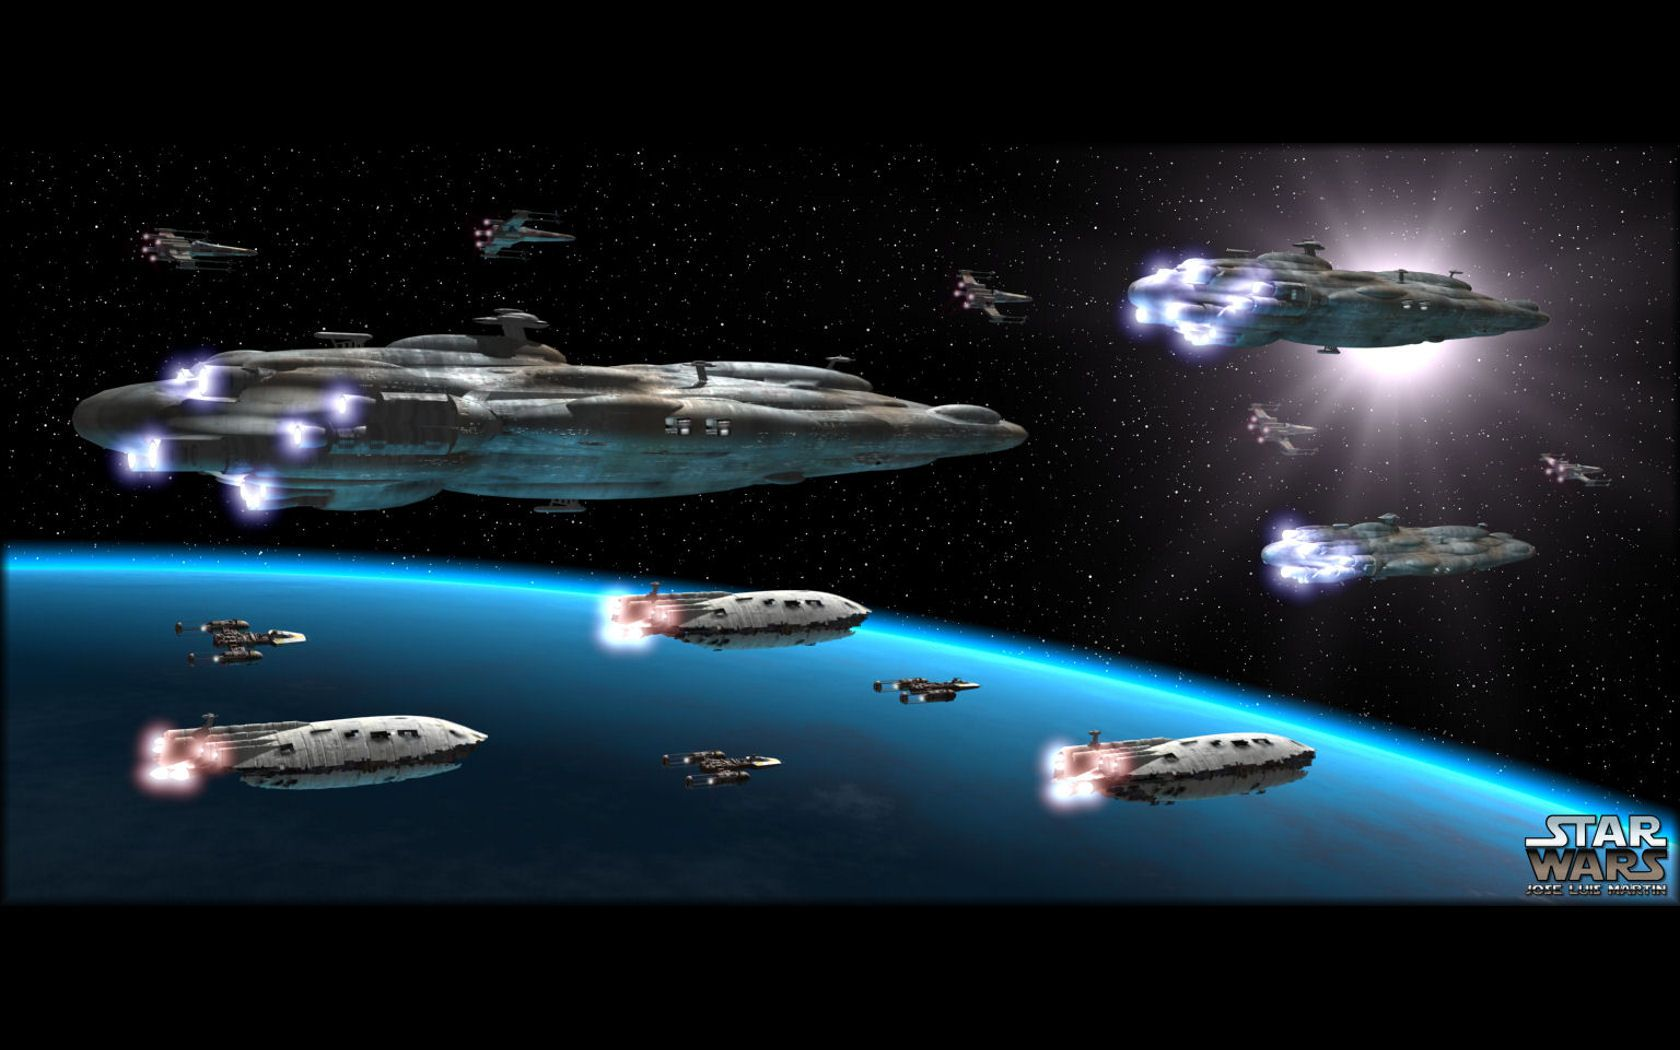 Star Wars Star Wars Wallpaper Star Wars Spaceships Star Wars